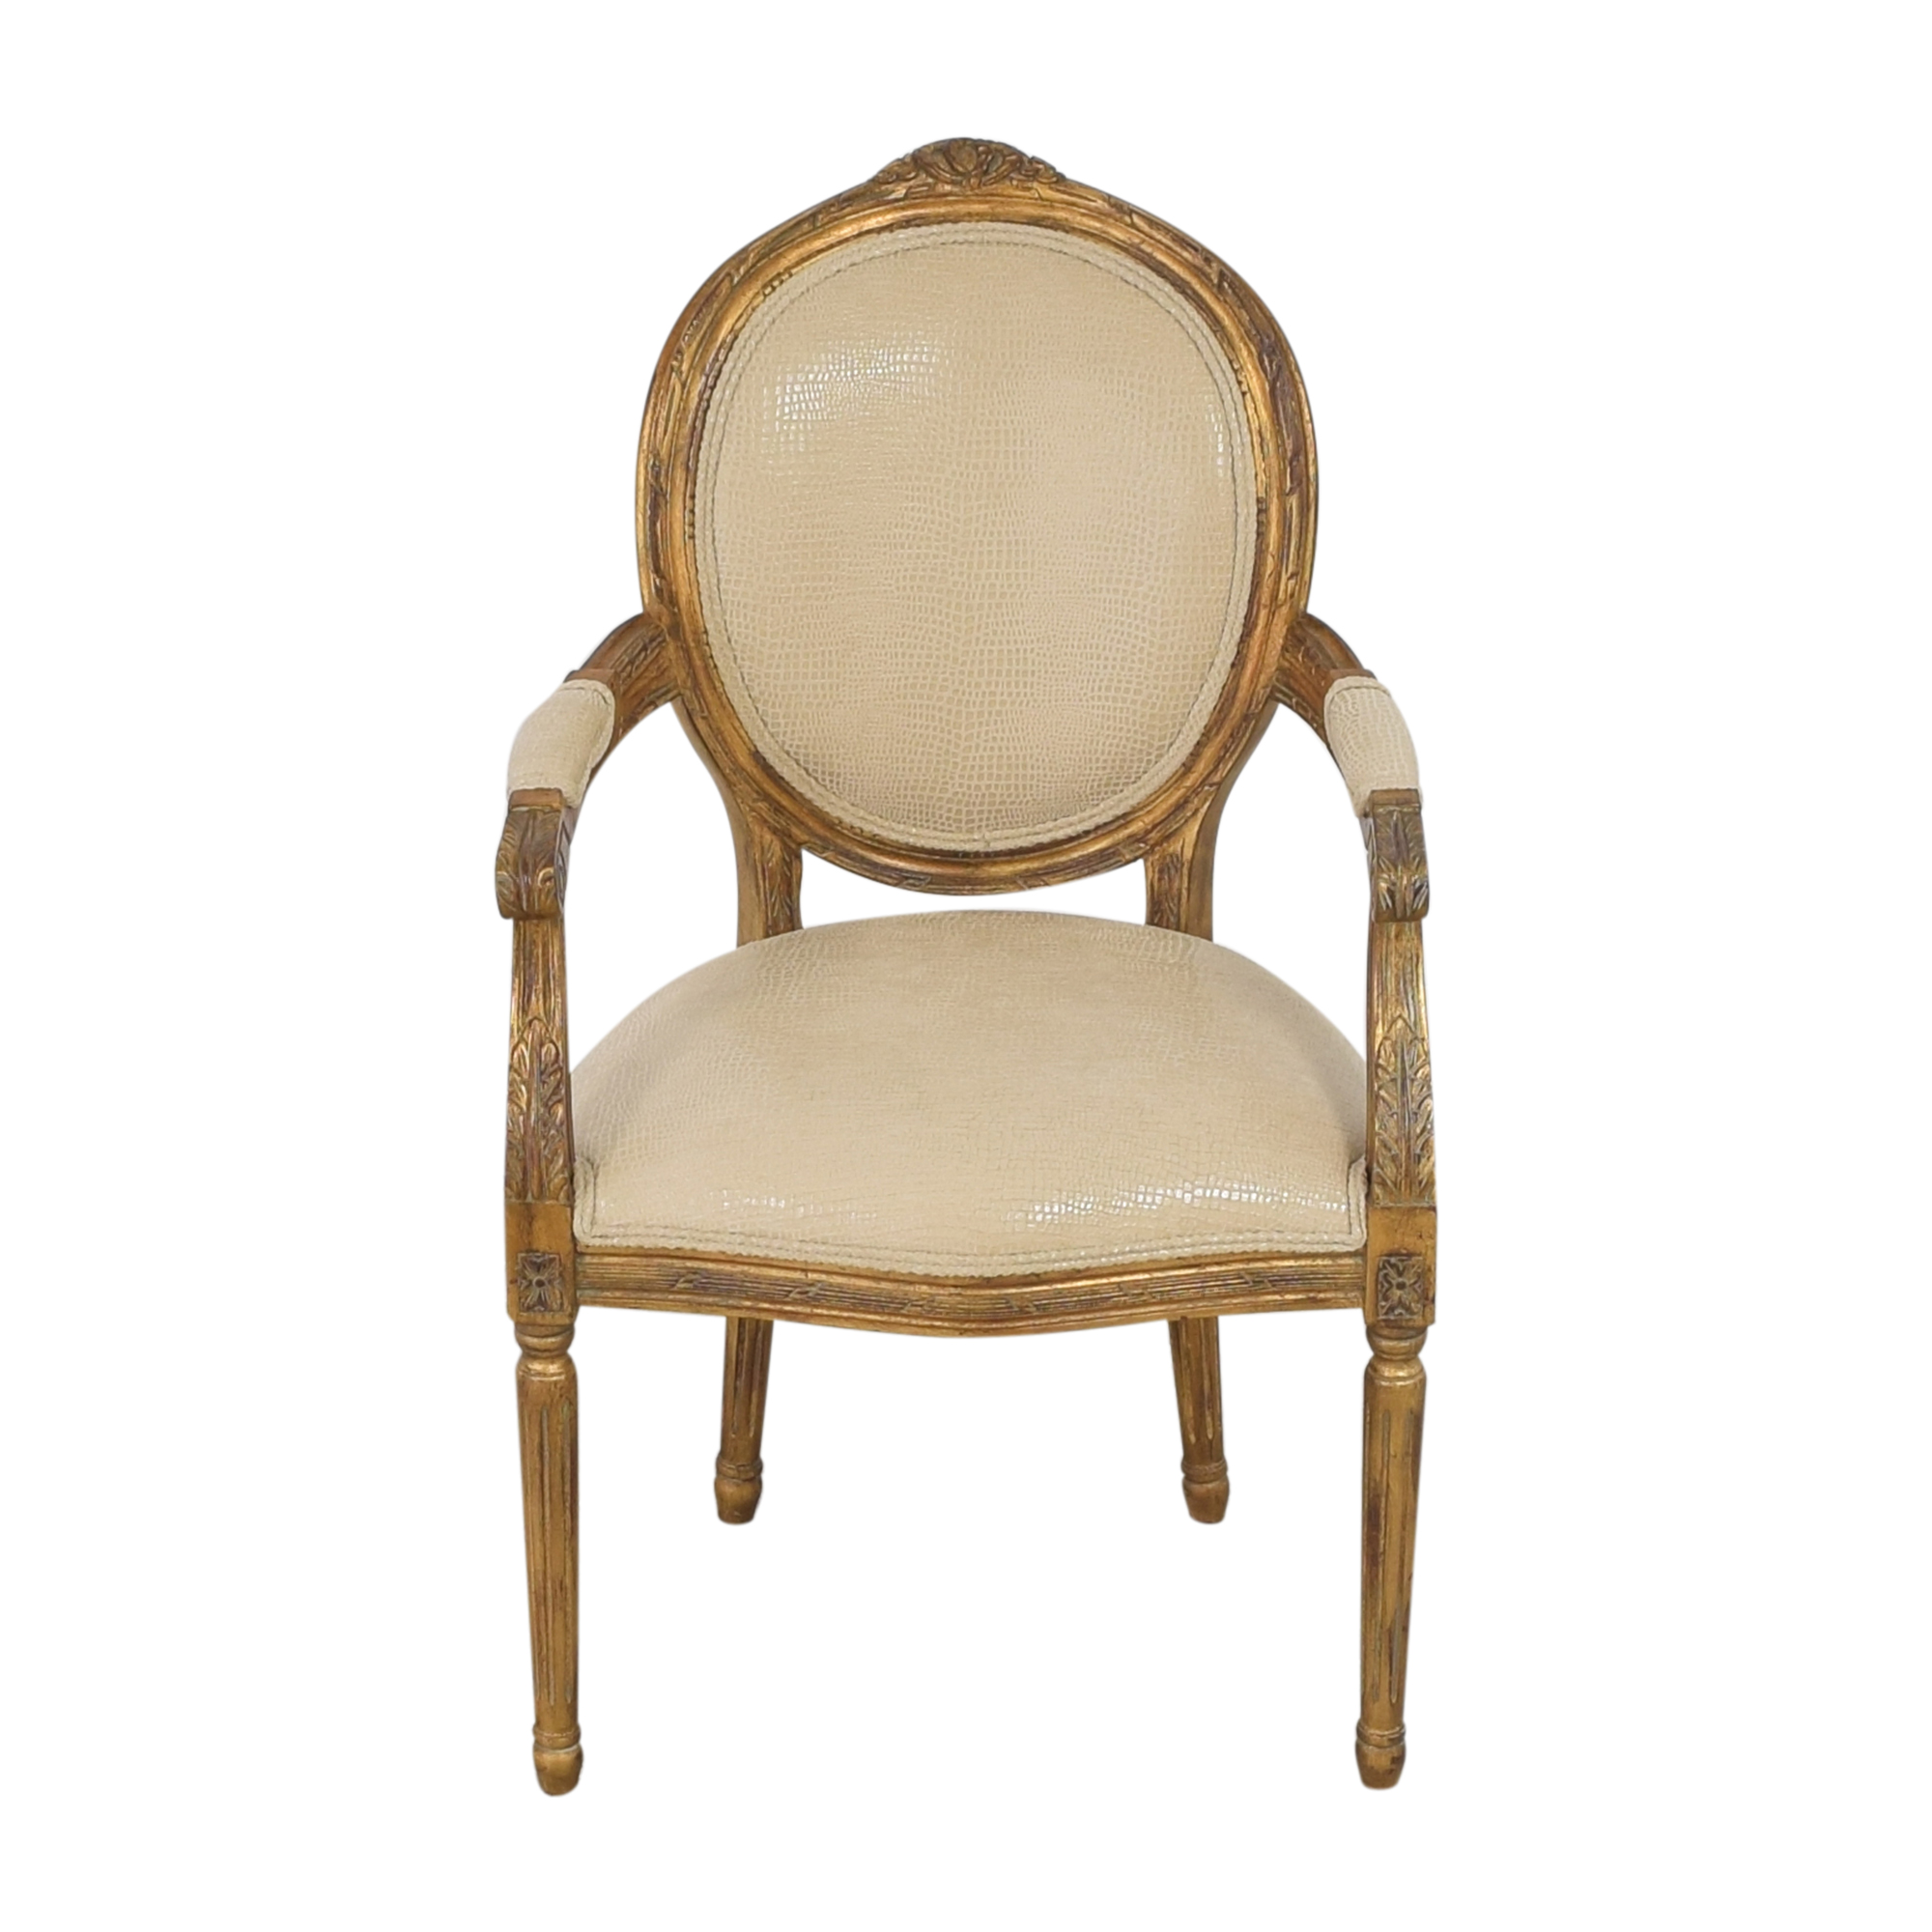 Carved French-Style Arm Chair Accent Chairs